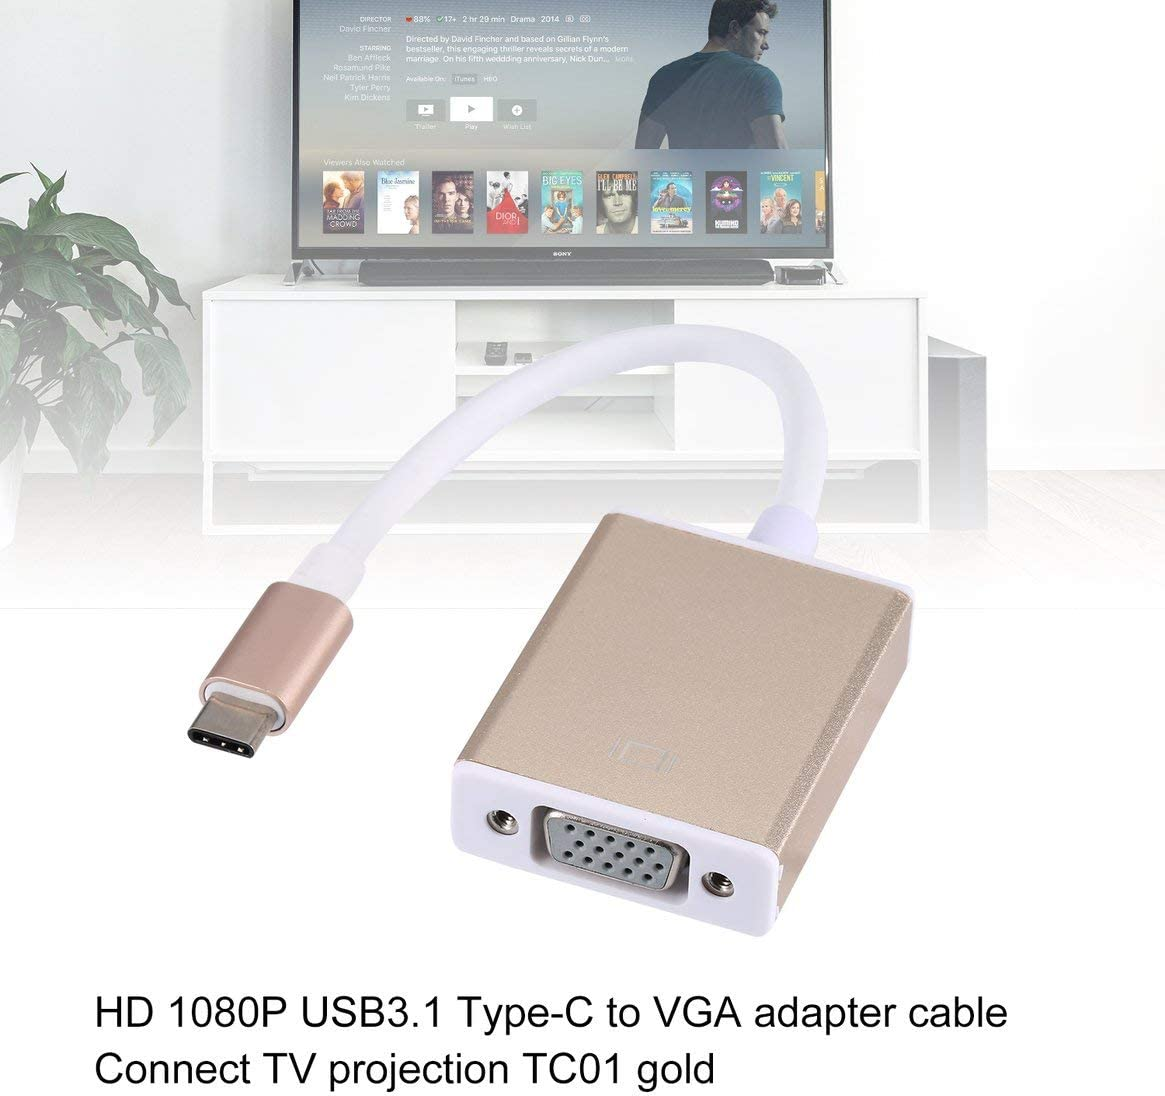 USB 3.1 Type C USB-C to VGA Adapter USB C Type C Thunderbolt 3 to VGA Male to Female Converter Cable for MacBook Pro